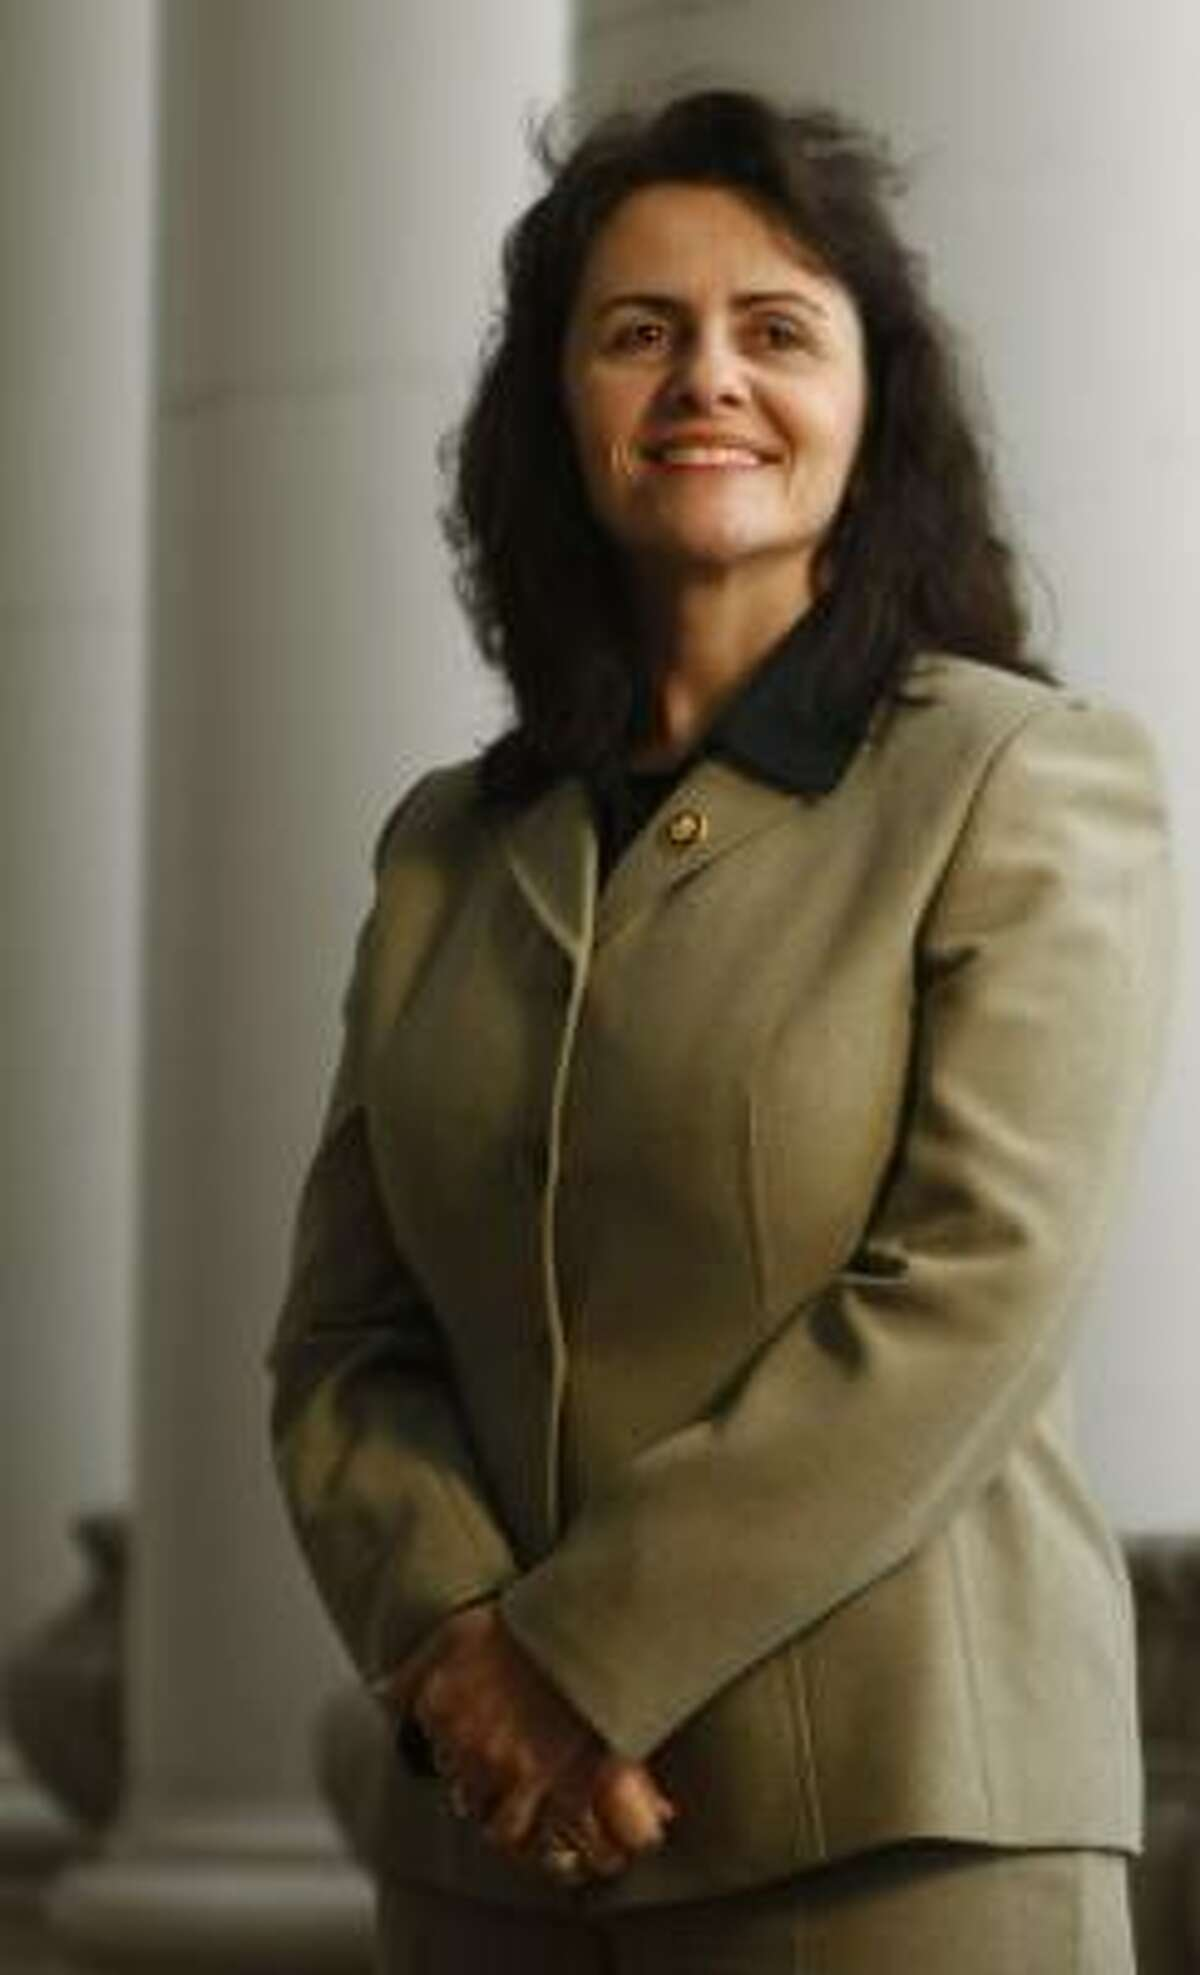 If approved by the Texas A&M Board of Regents, Elsa Murano will become the school's first woman president.